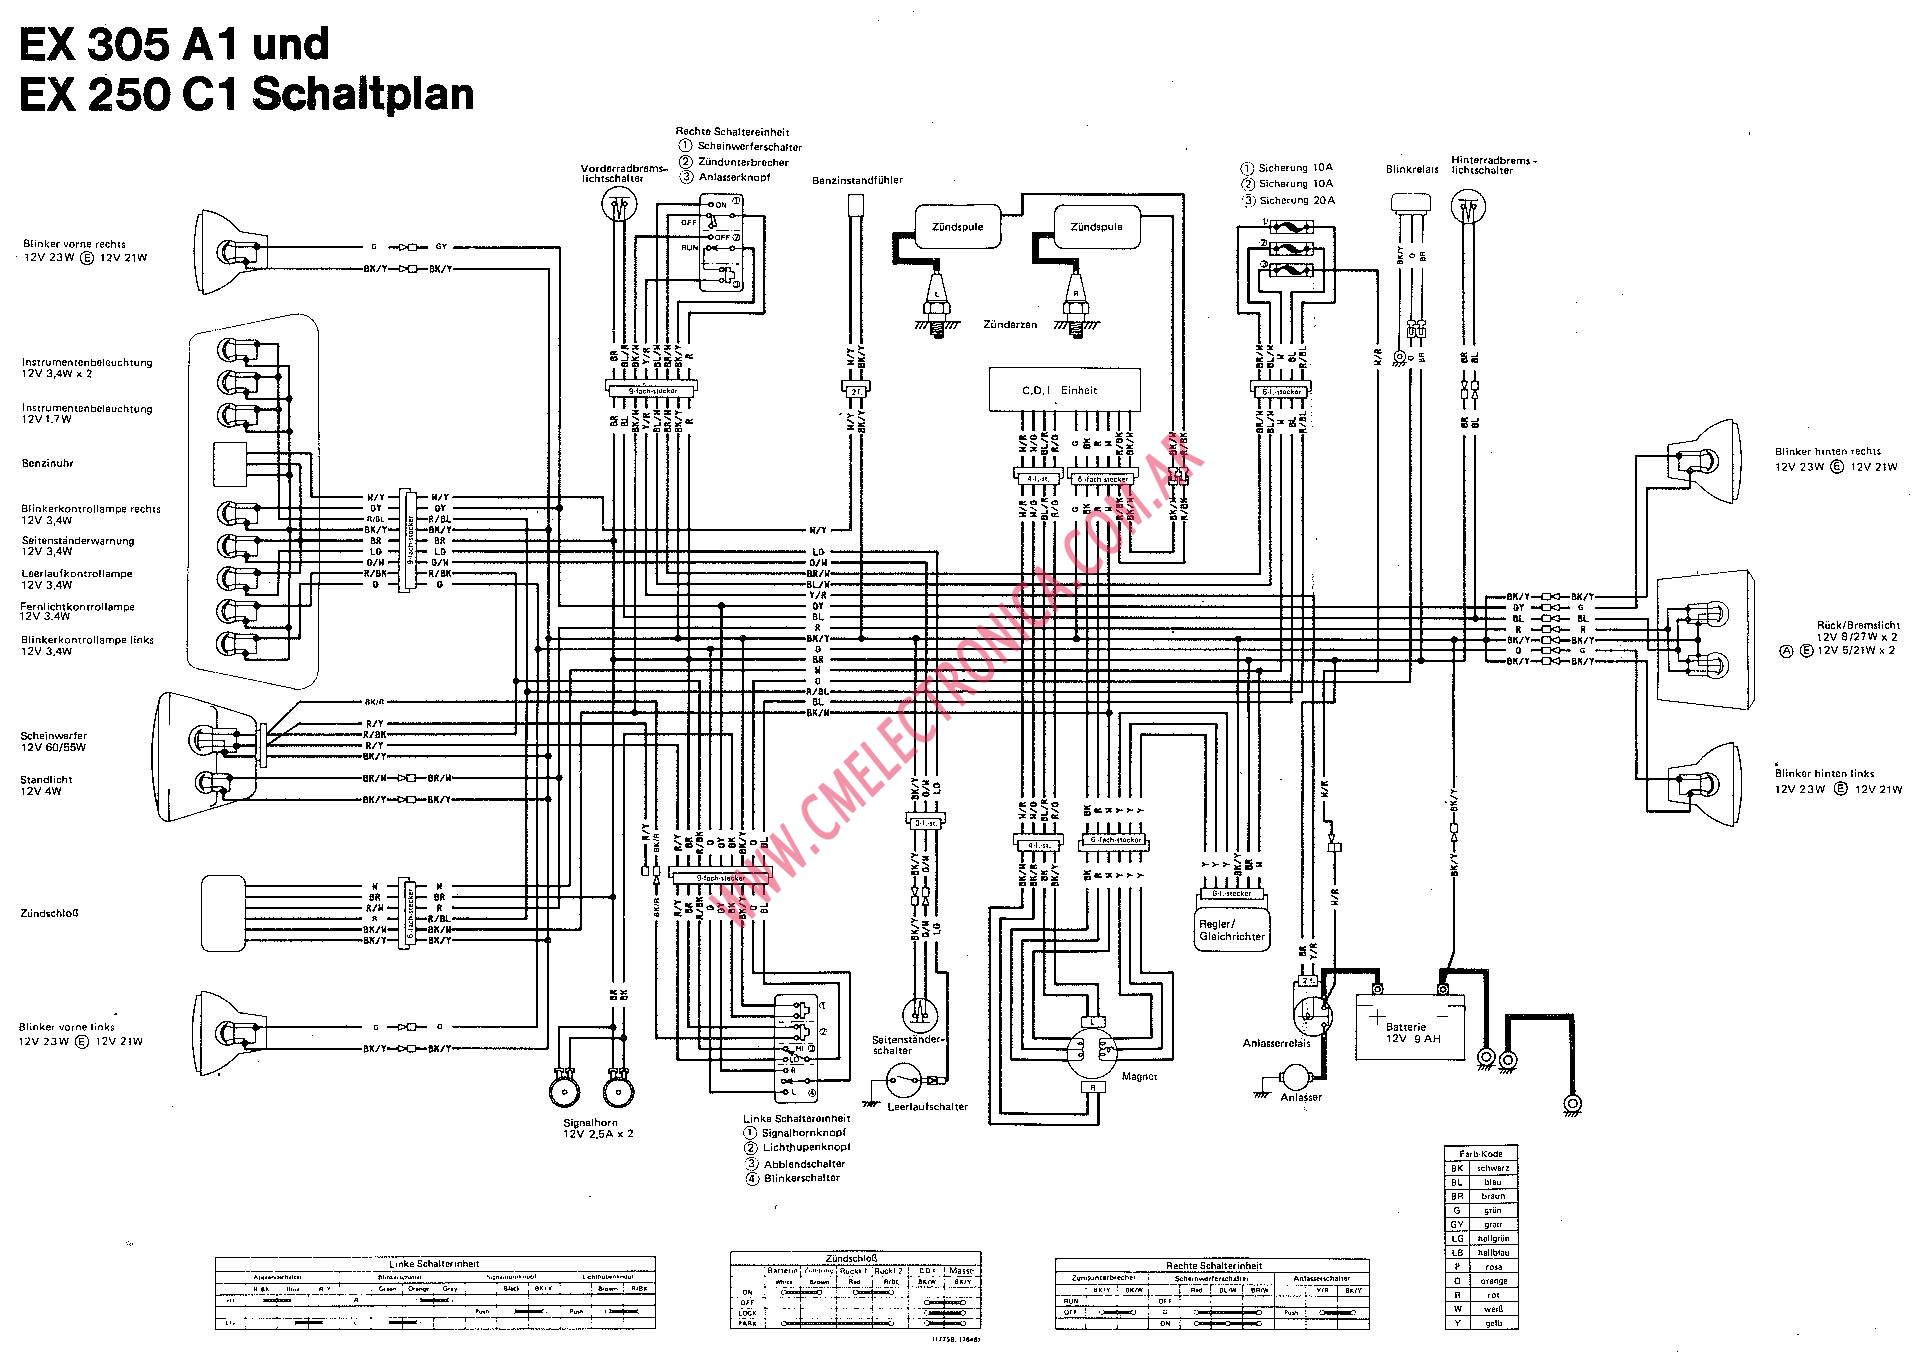 Fantastic Hd Flhr Wiring Diagram 2008 Image Collection - Wiring ...